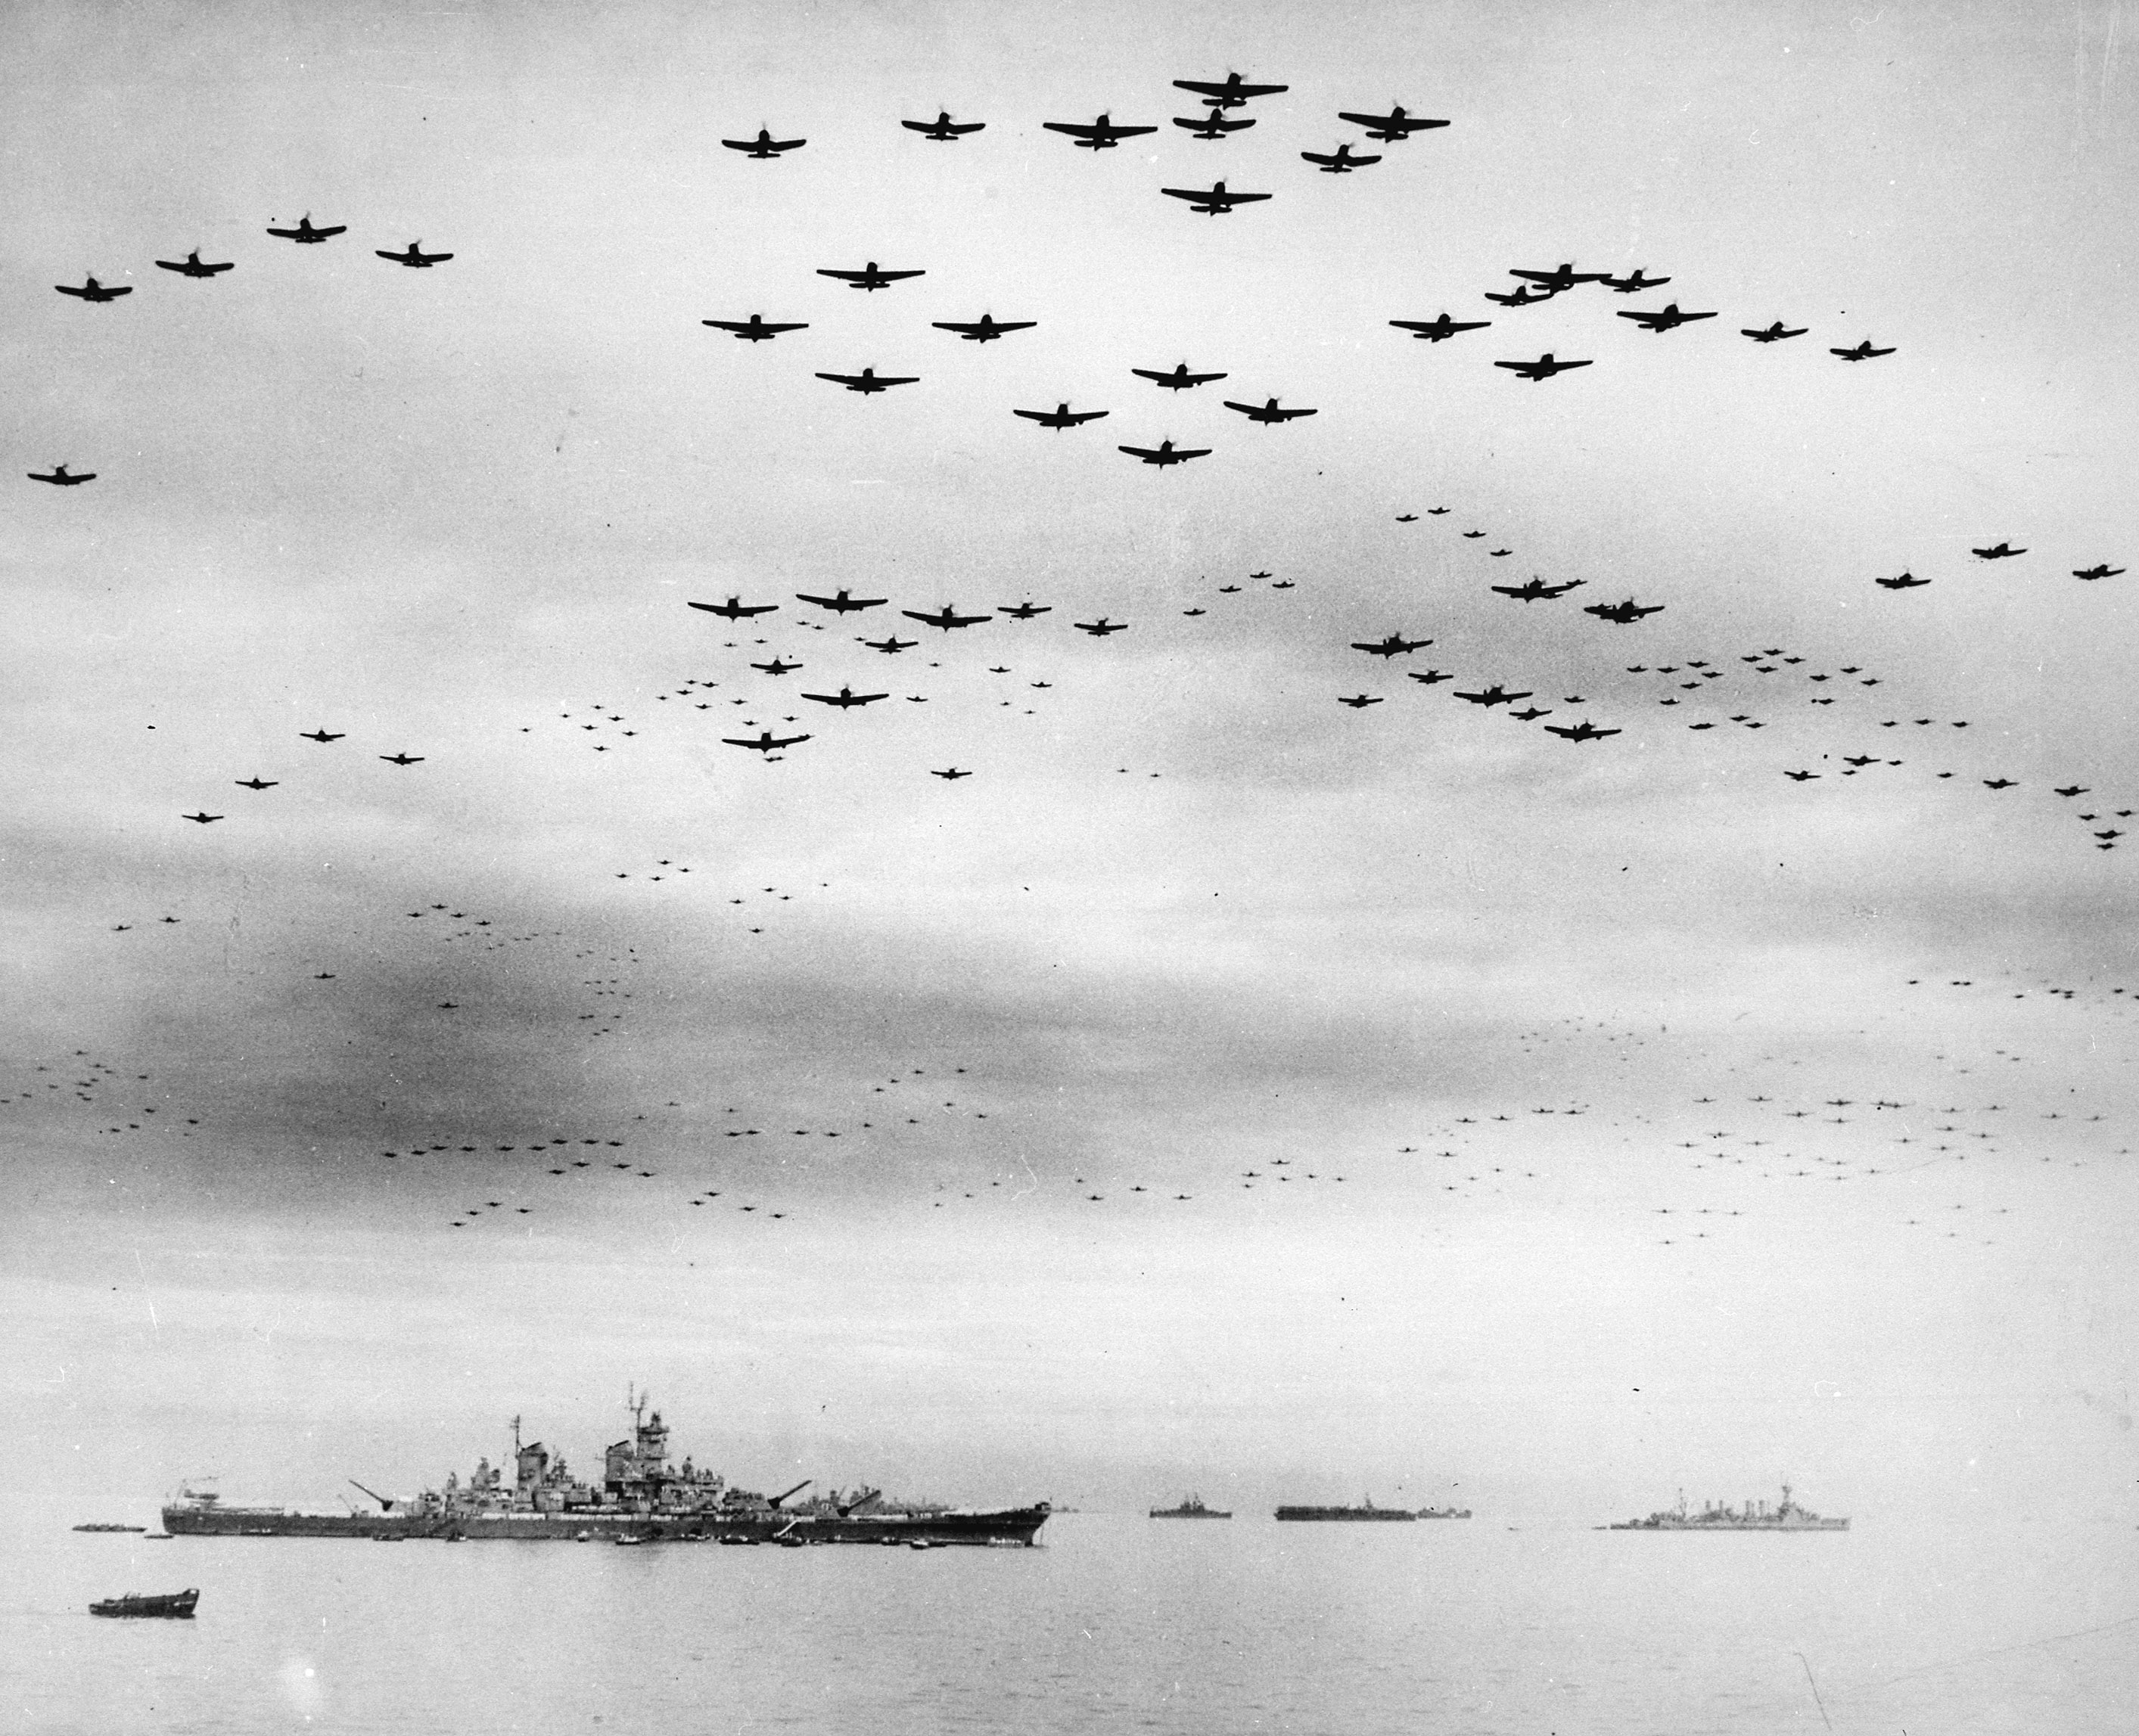 Vought F4U Corsairs and Grumman F6F Hellcats fly in formation past the <em>USS Missouri</em> during surrender ceremonies in Tokyo Bay on Sept. 2, 1945. Photo No. 80-G-421130 courtesy of the National Archives.